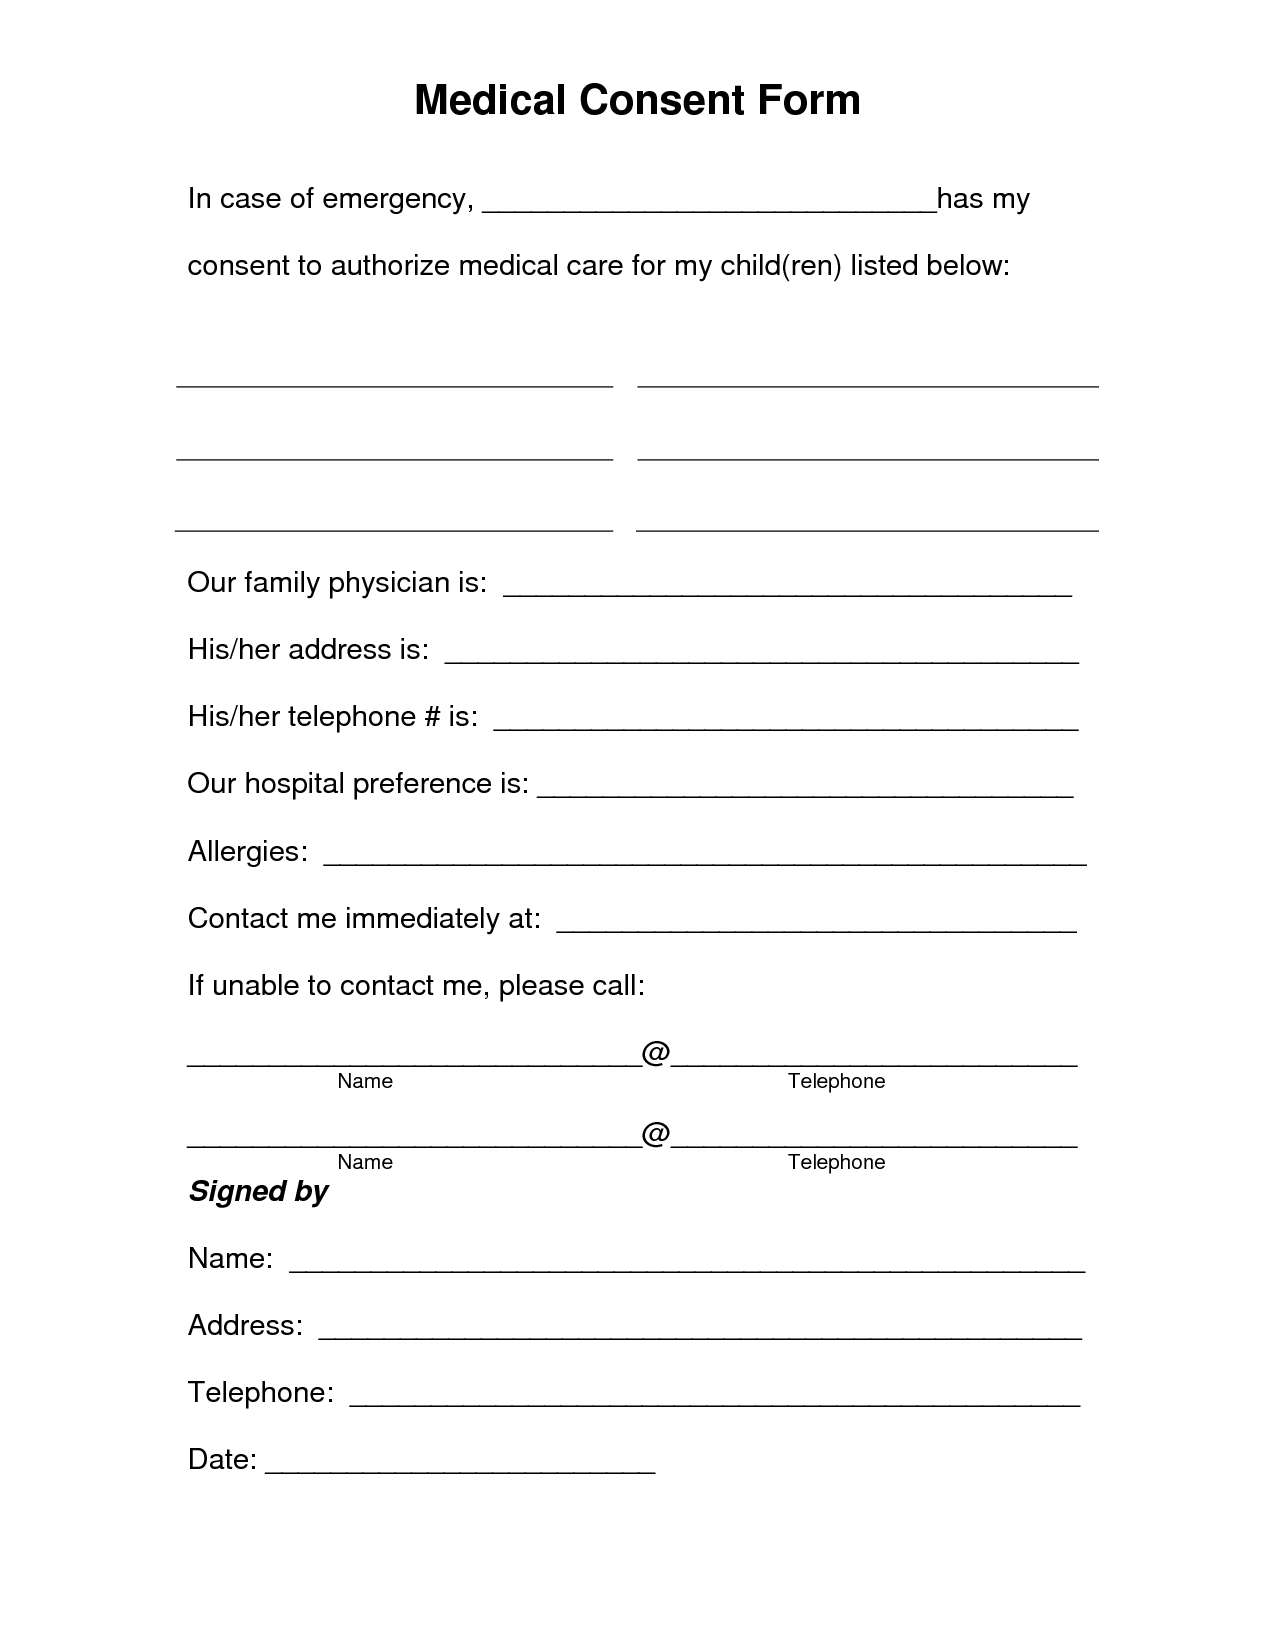 Free Printable Medical Consent Form | Free Medical Consent Form - Free Printable Emergency Medical Card